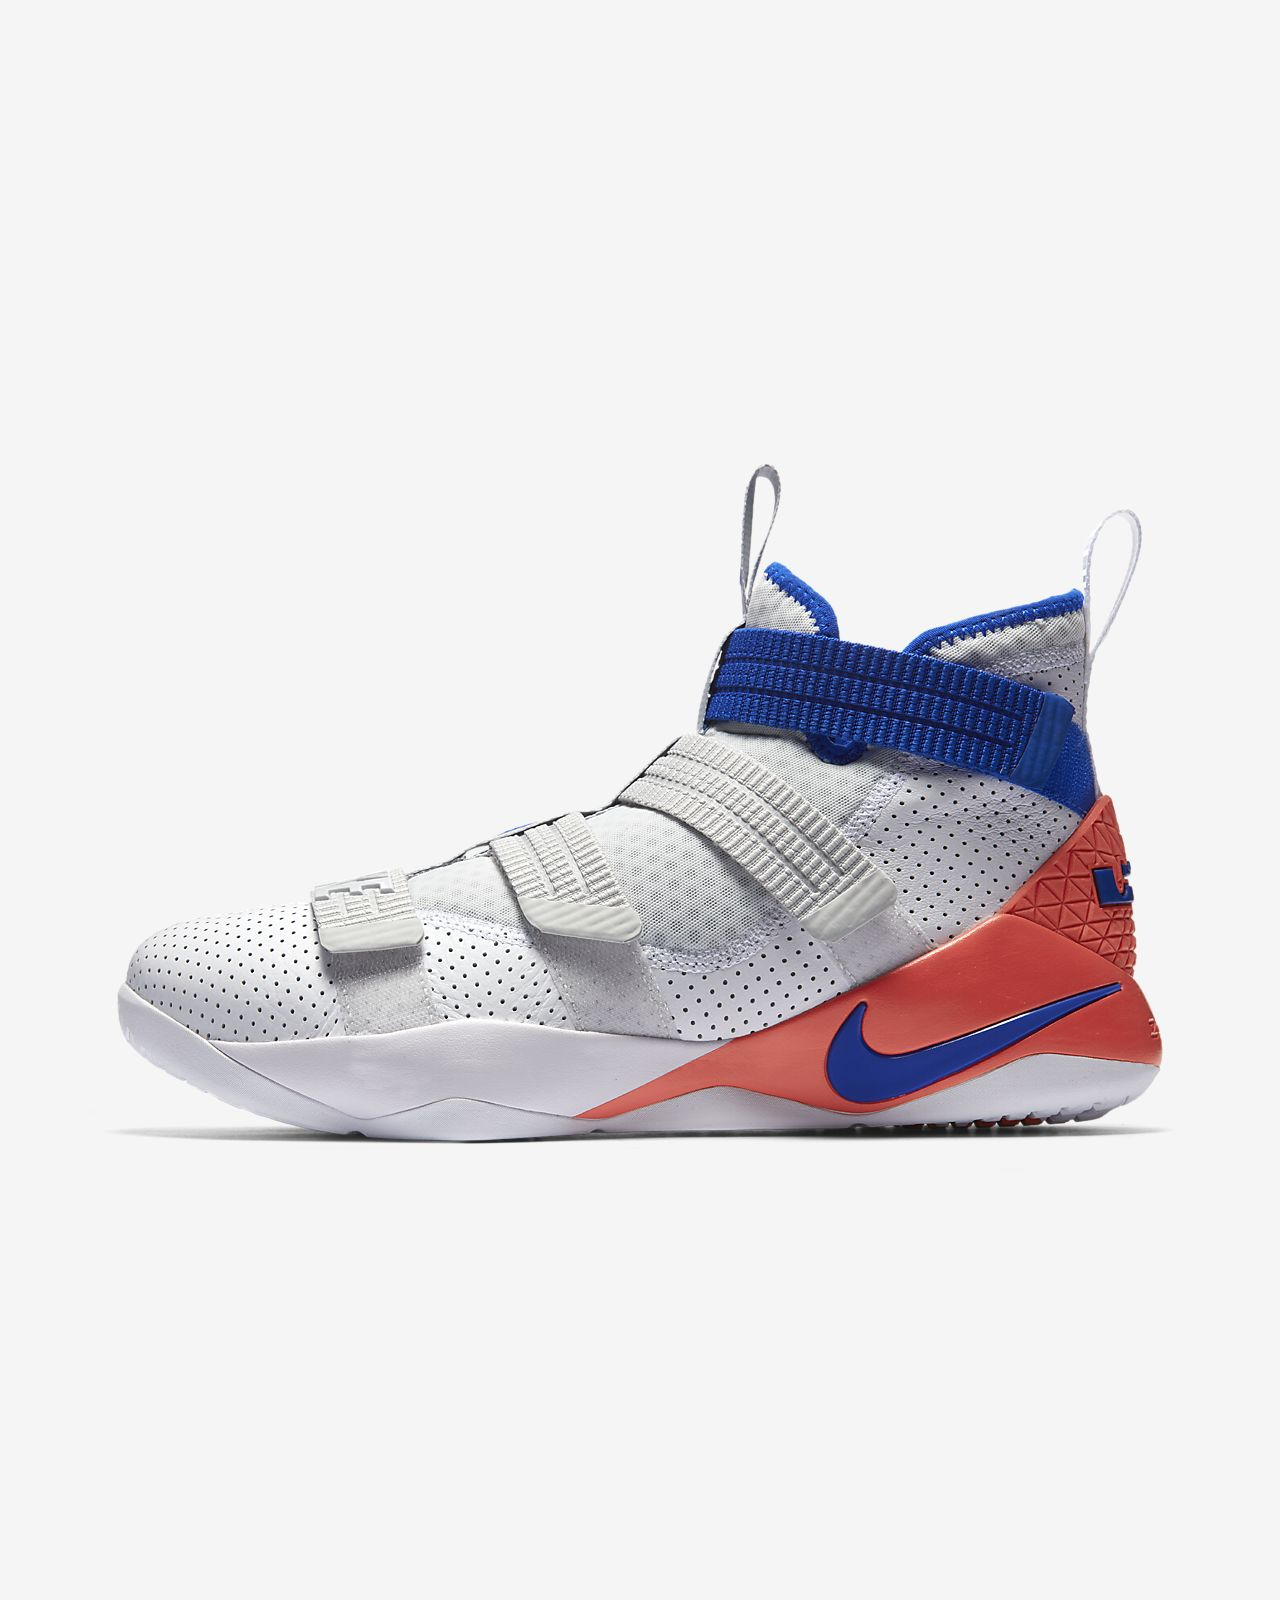 Nike Chaussure de basketball Lebron Soldier XI